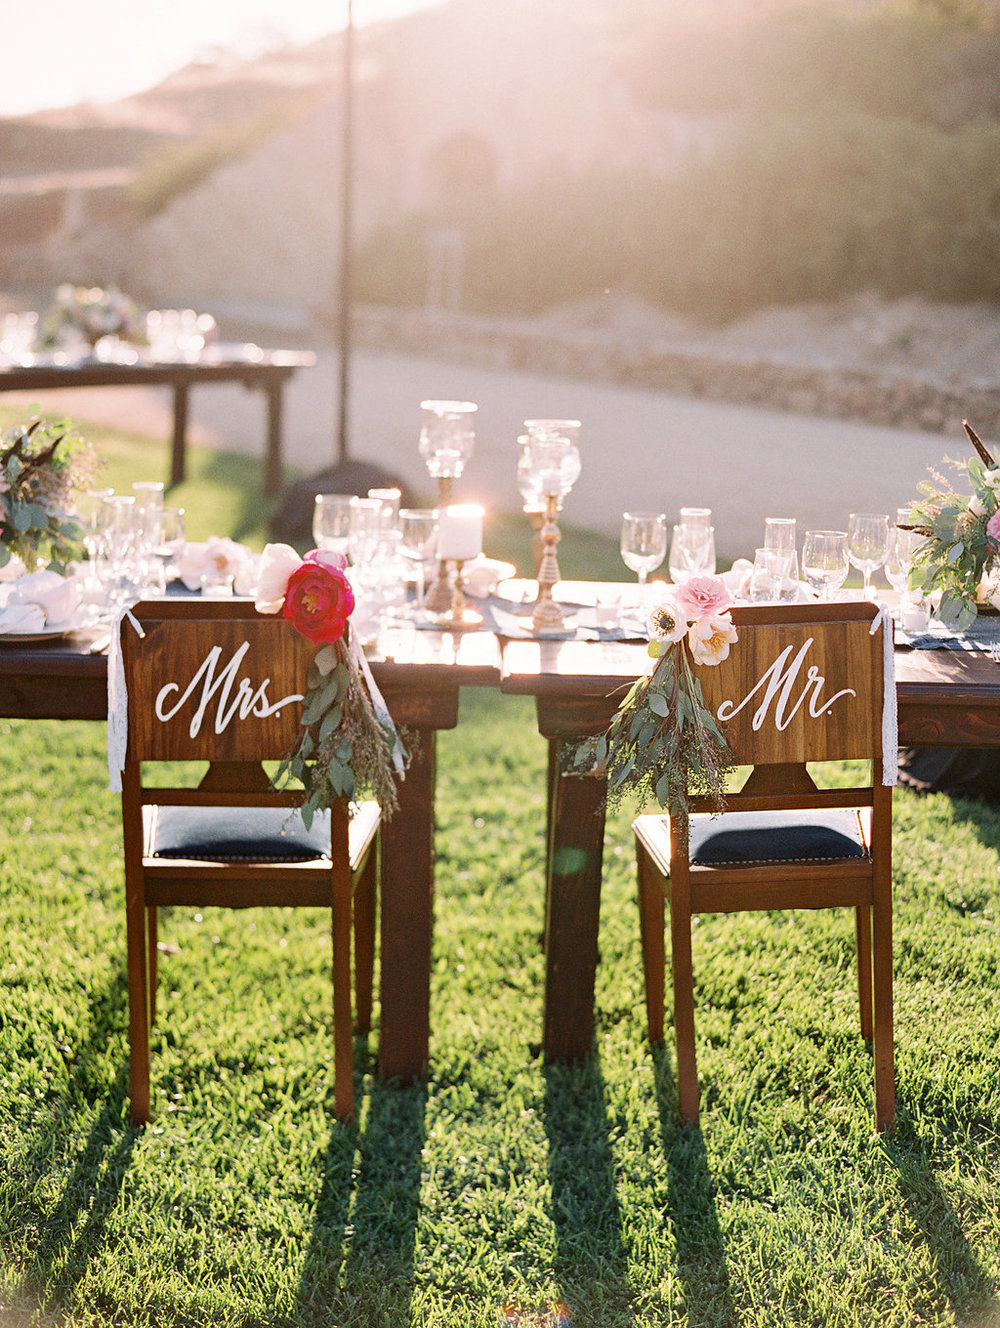 www.santabarbarawedding.com | Lavender and Twine | Sunstone Winery | Bride and Groom's Chairs | Reception